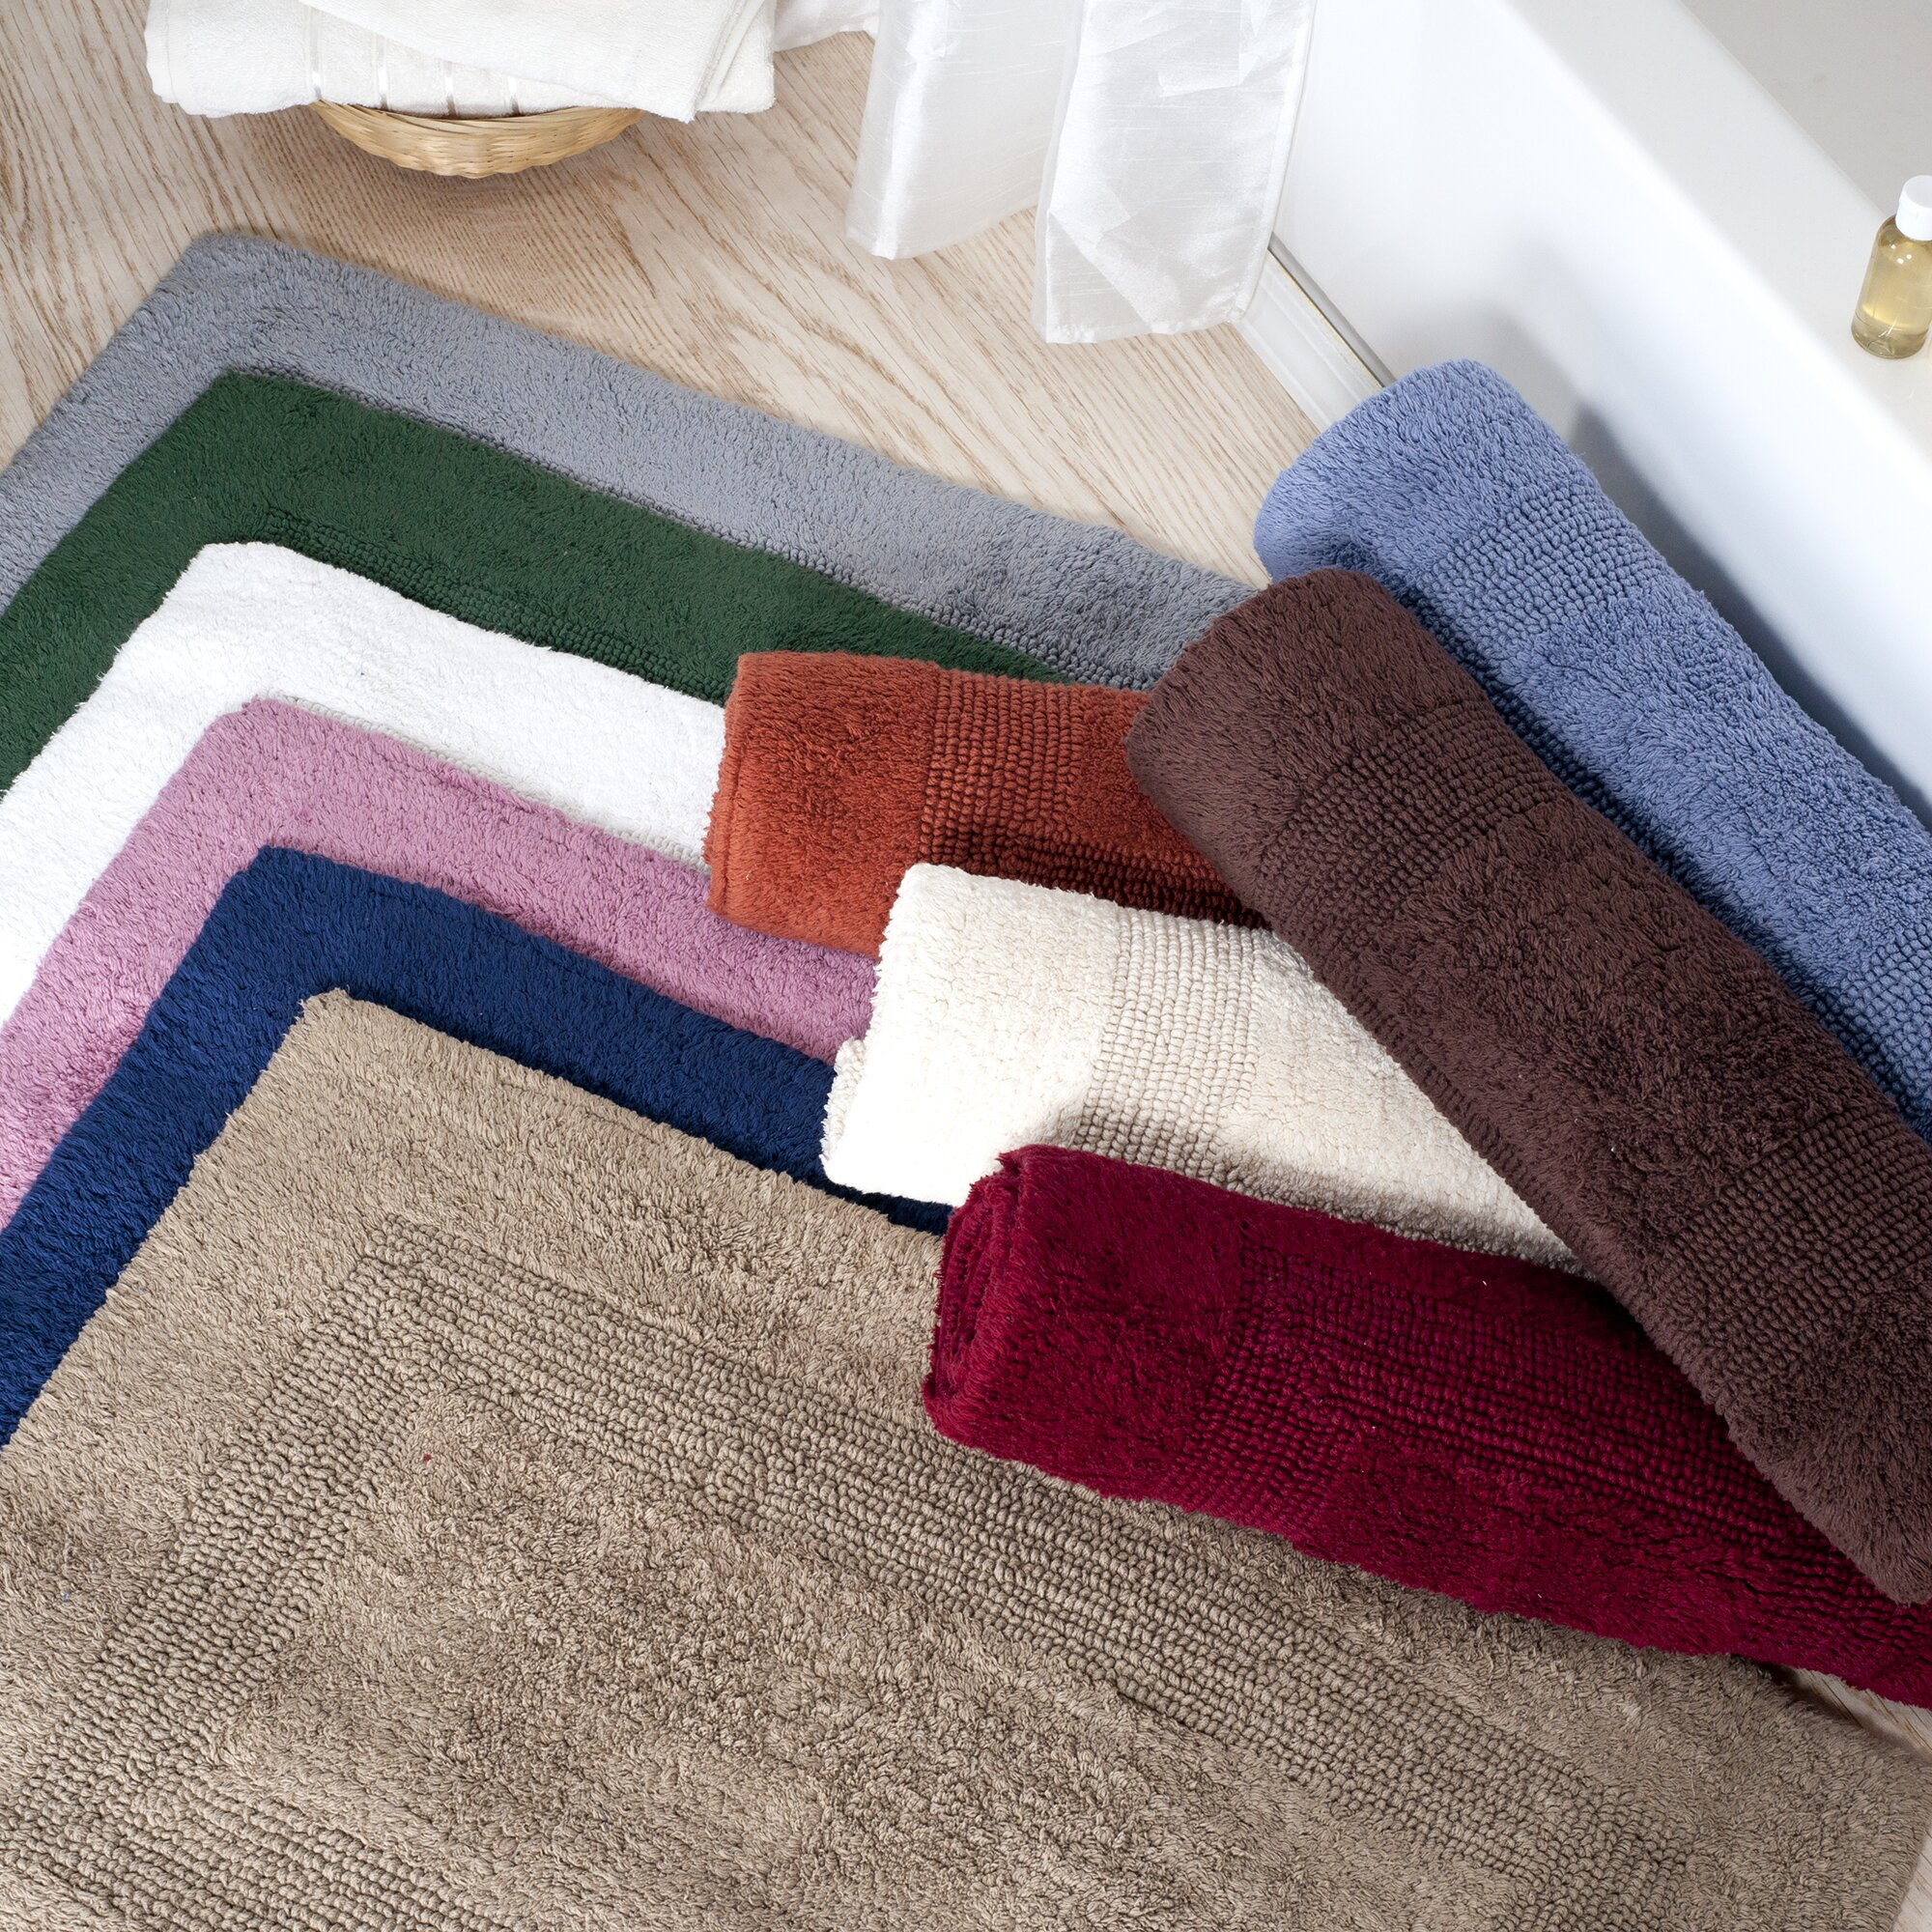 Rubber Backed Kitchen Rugs Bathroom Rugs Without Rubber Backing Textiles And Rugs Ideas